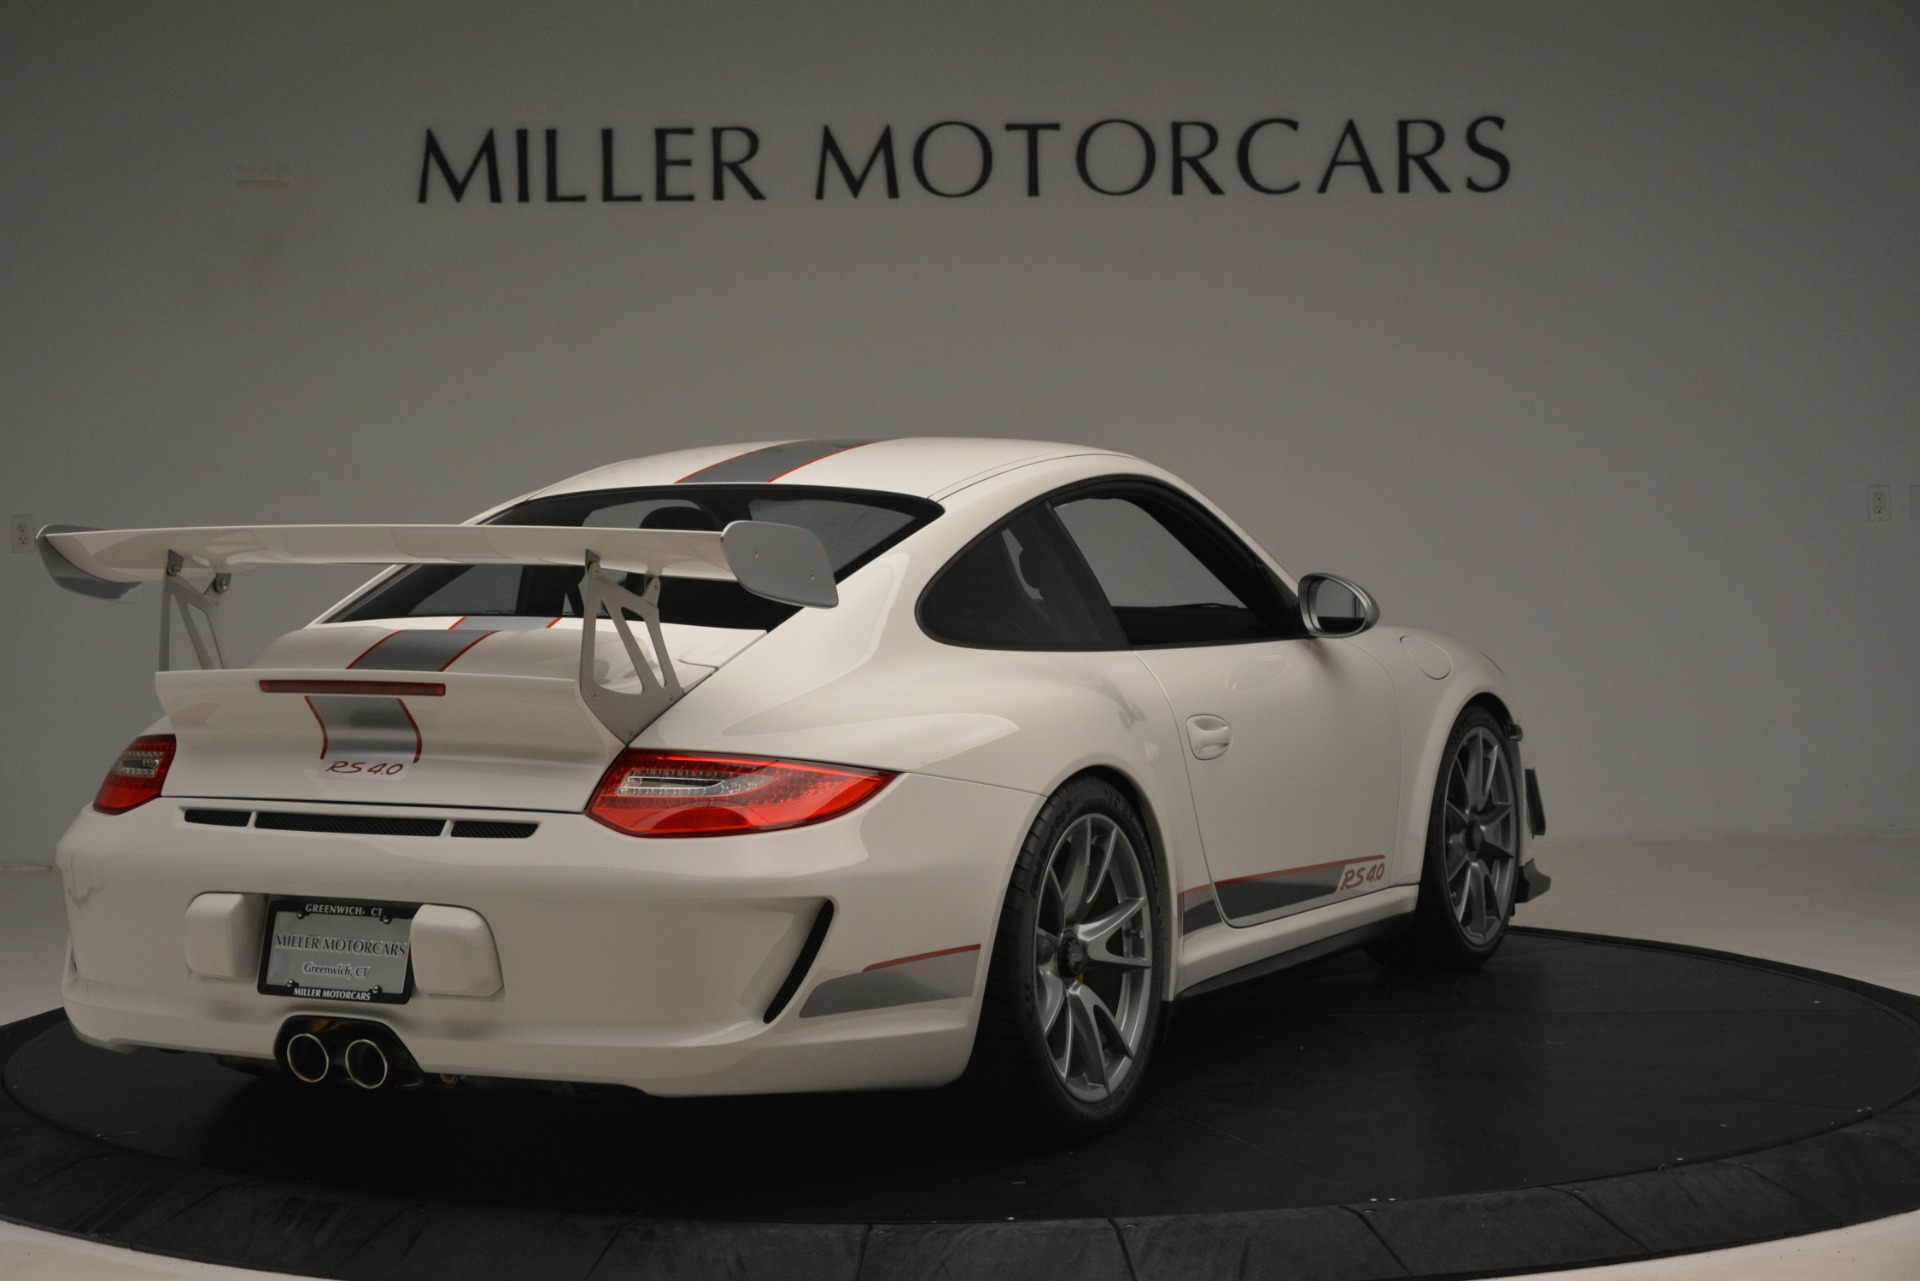 Used 2011 Porsche 911 GT3 RS 4.0 For Sale In Greenwich, CT 3188_p8